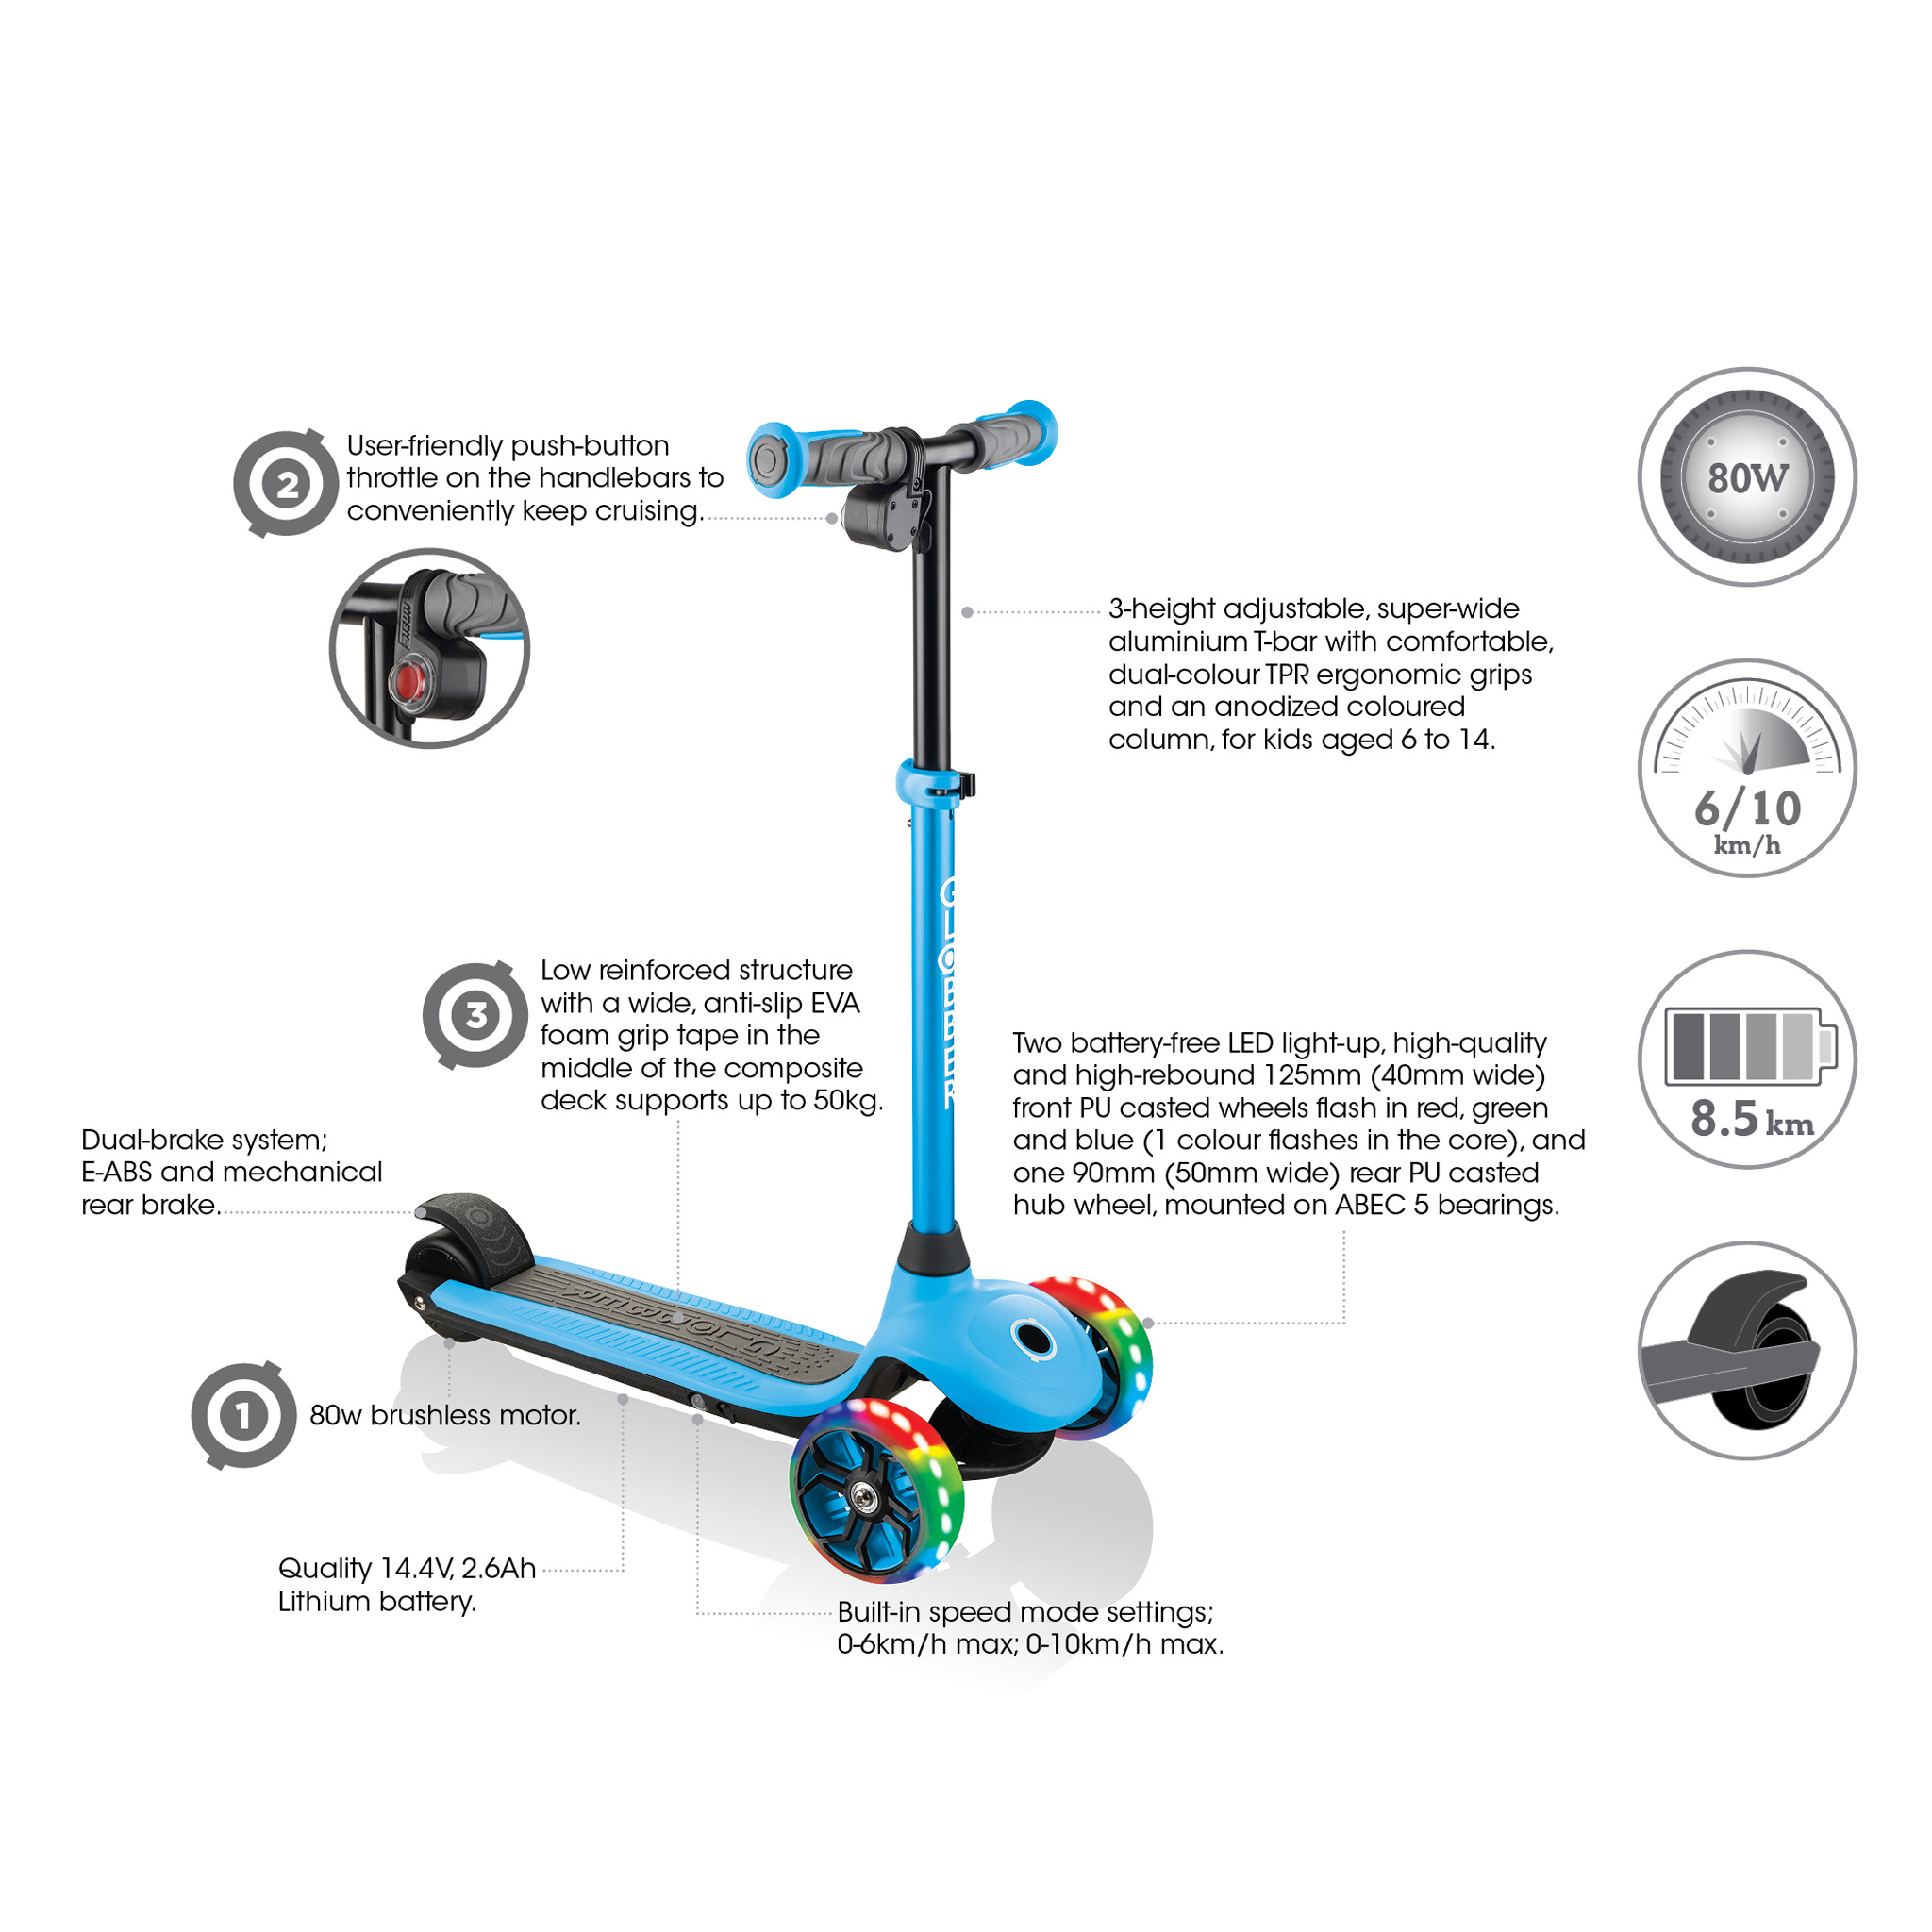 ONE K E-MOTION 4 best 3-wheel electric scooter for kids key features